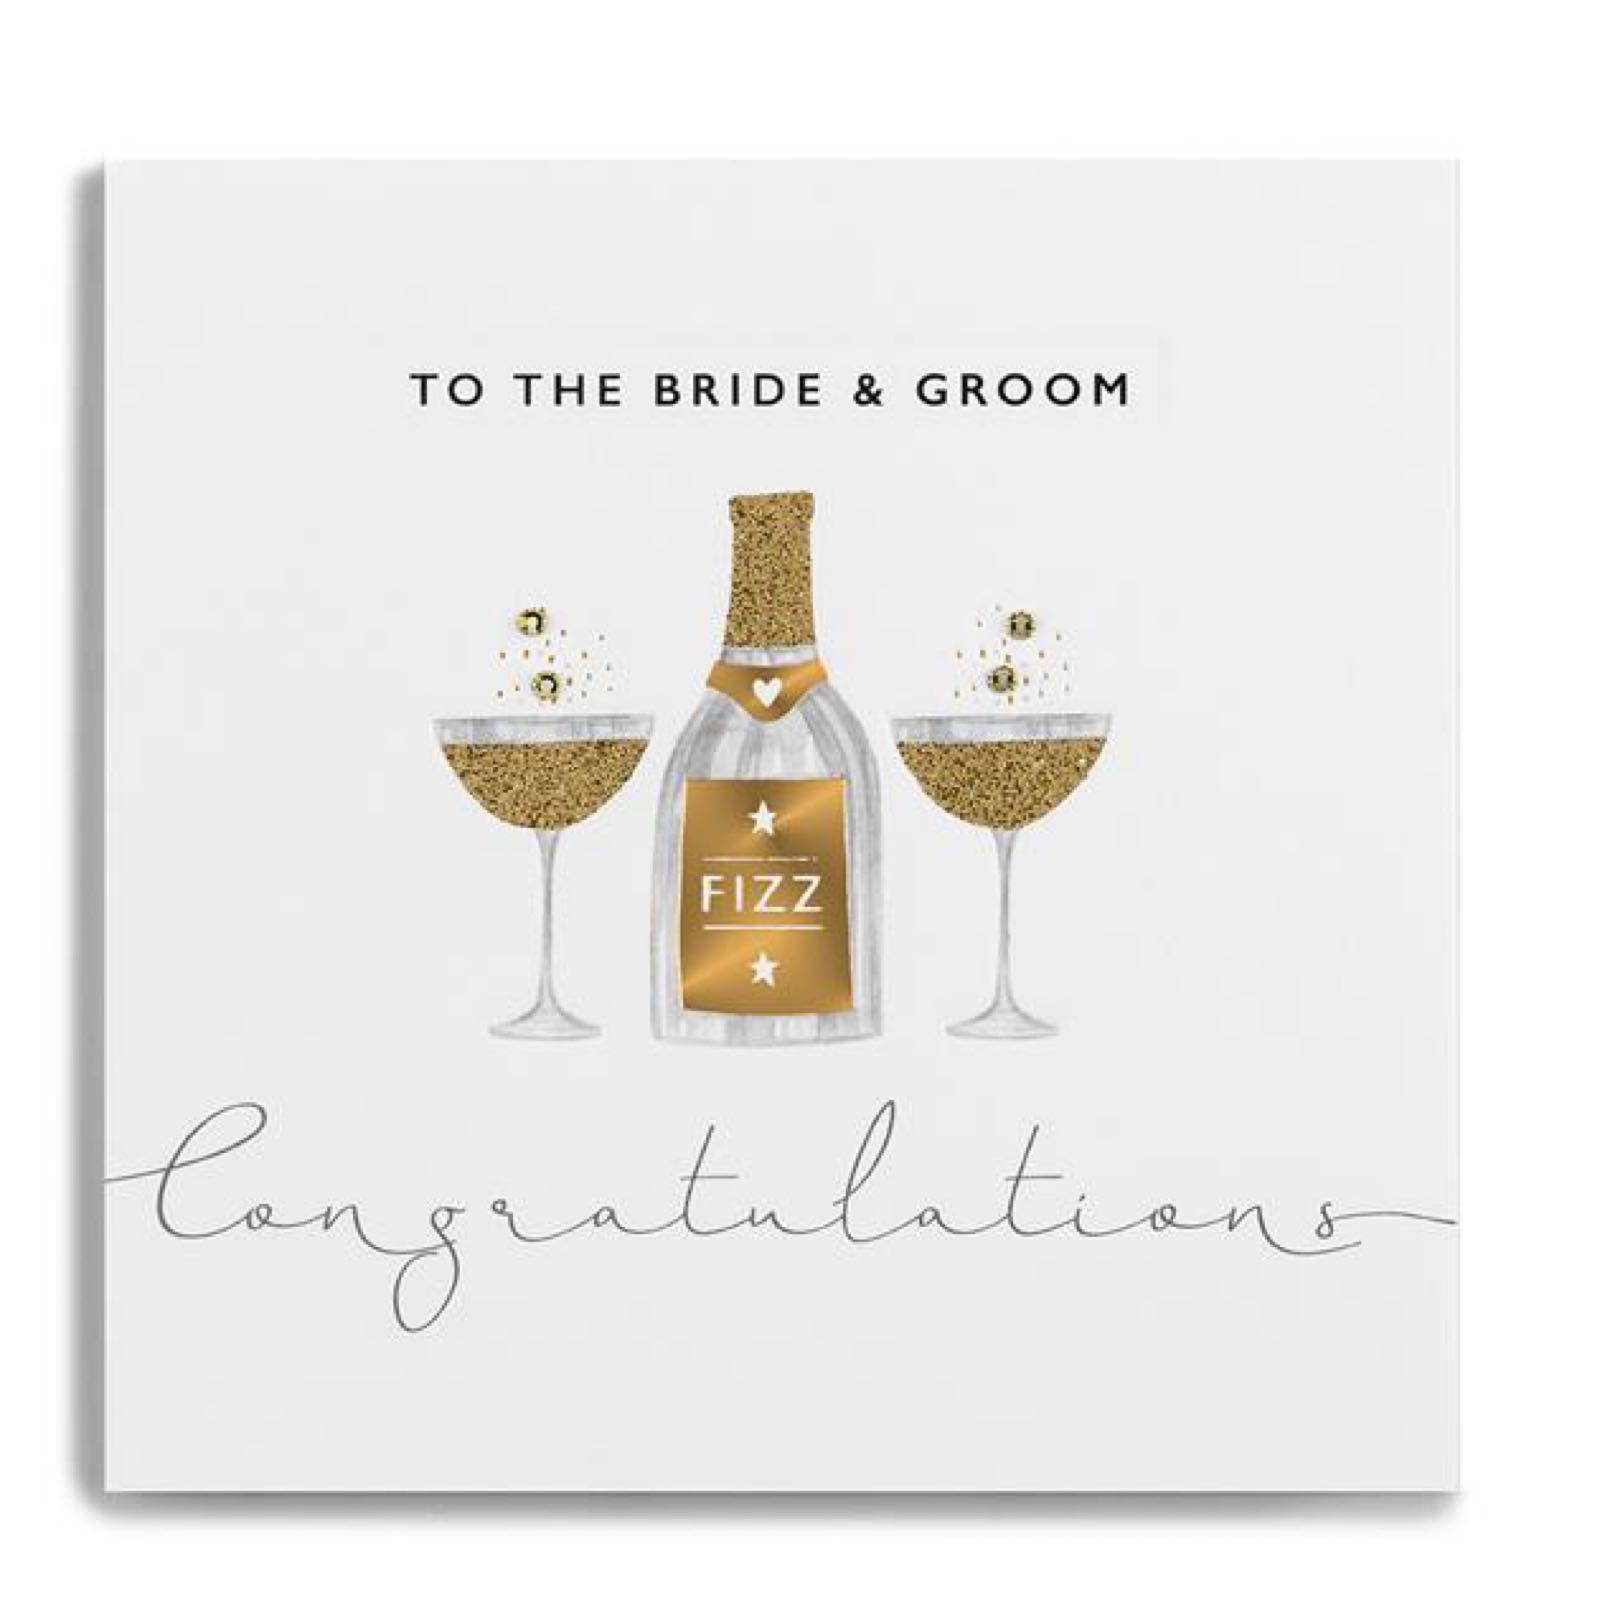 Janie Wilson gold leaf bride and groom card